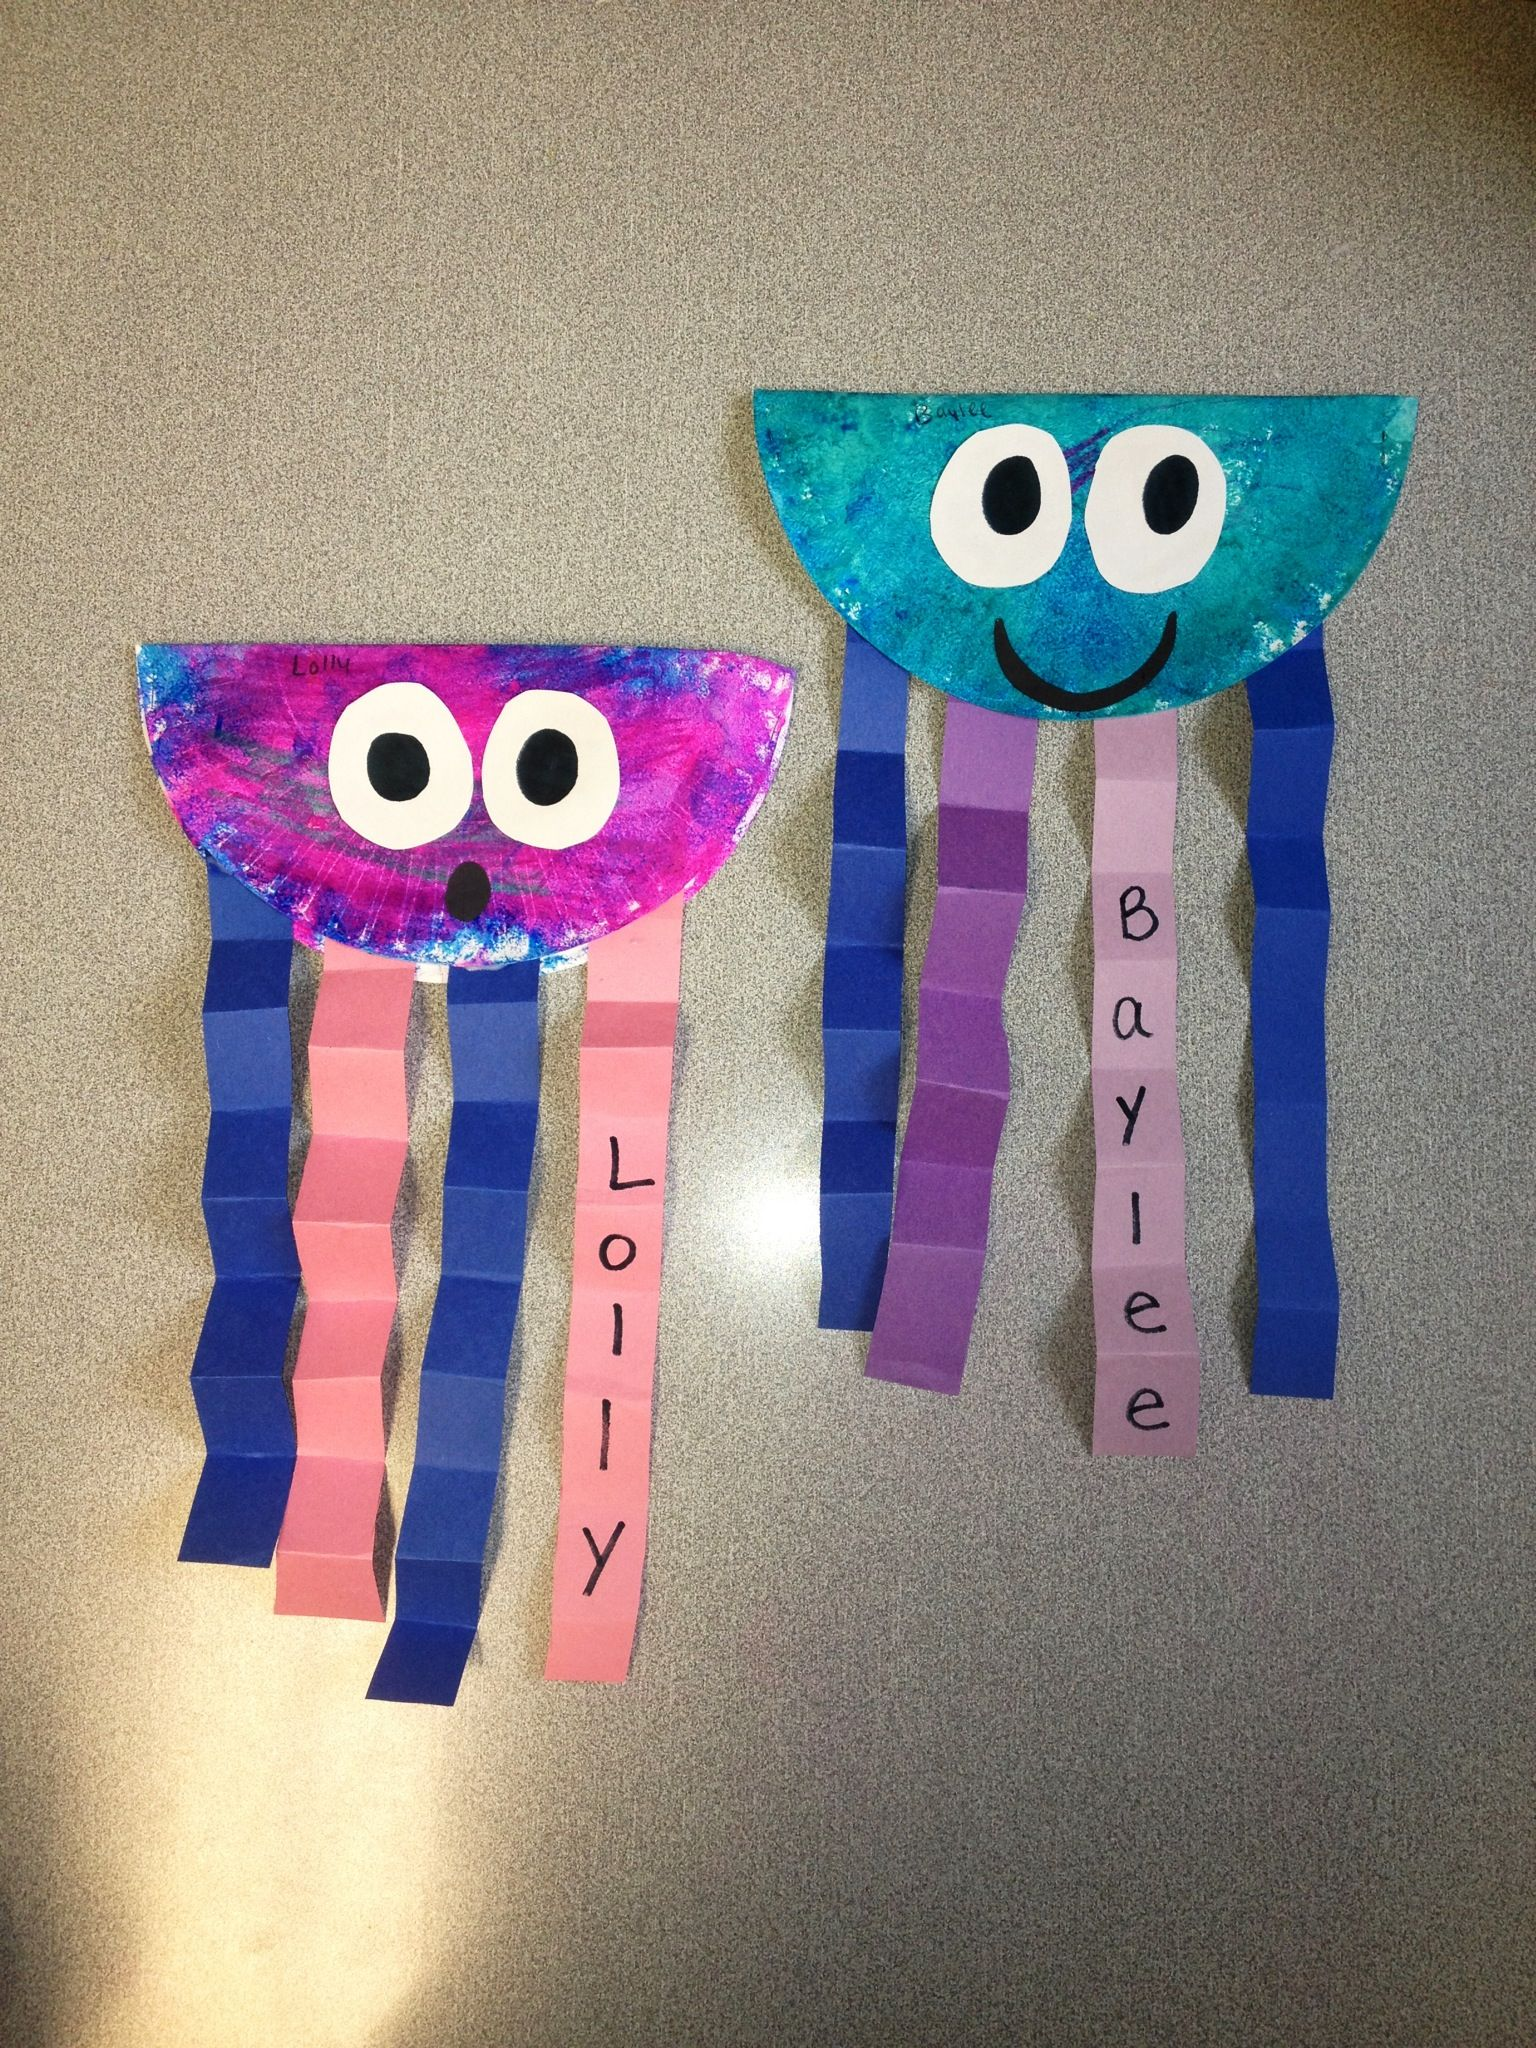 15 Easy Crafts To Do With Kids